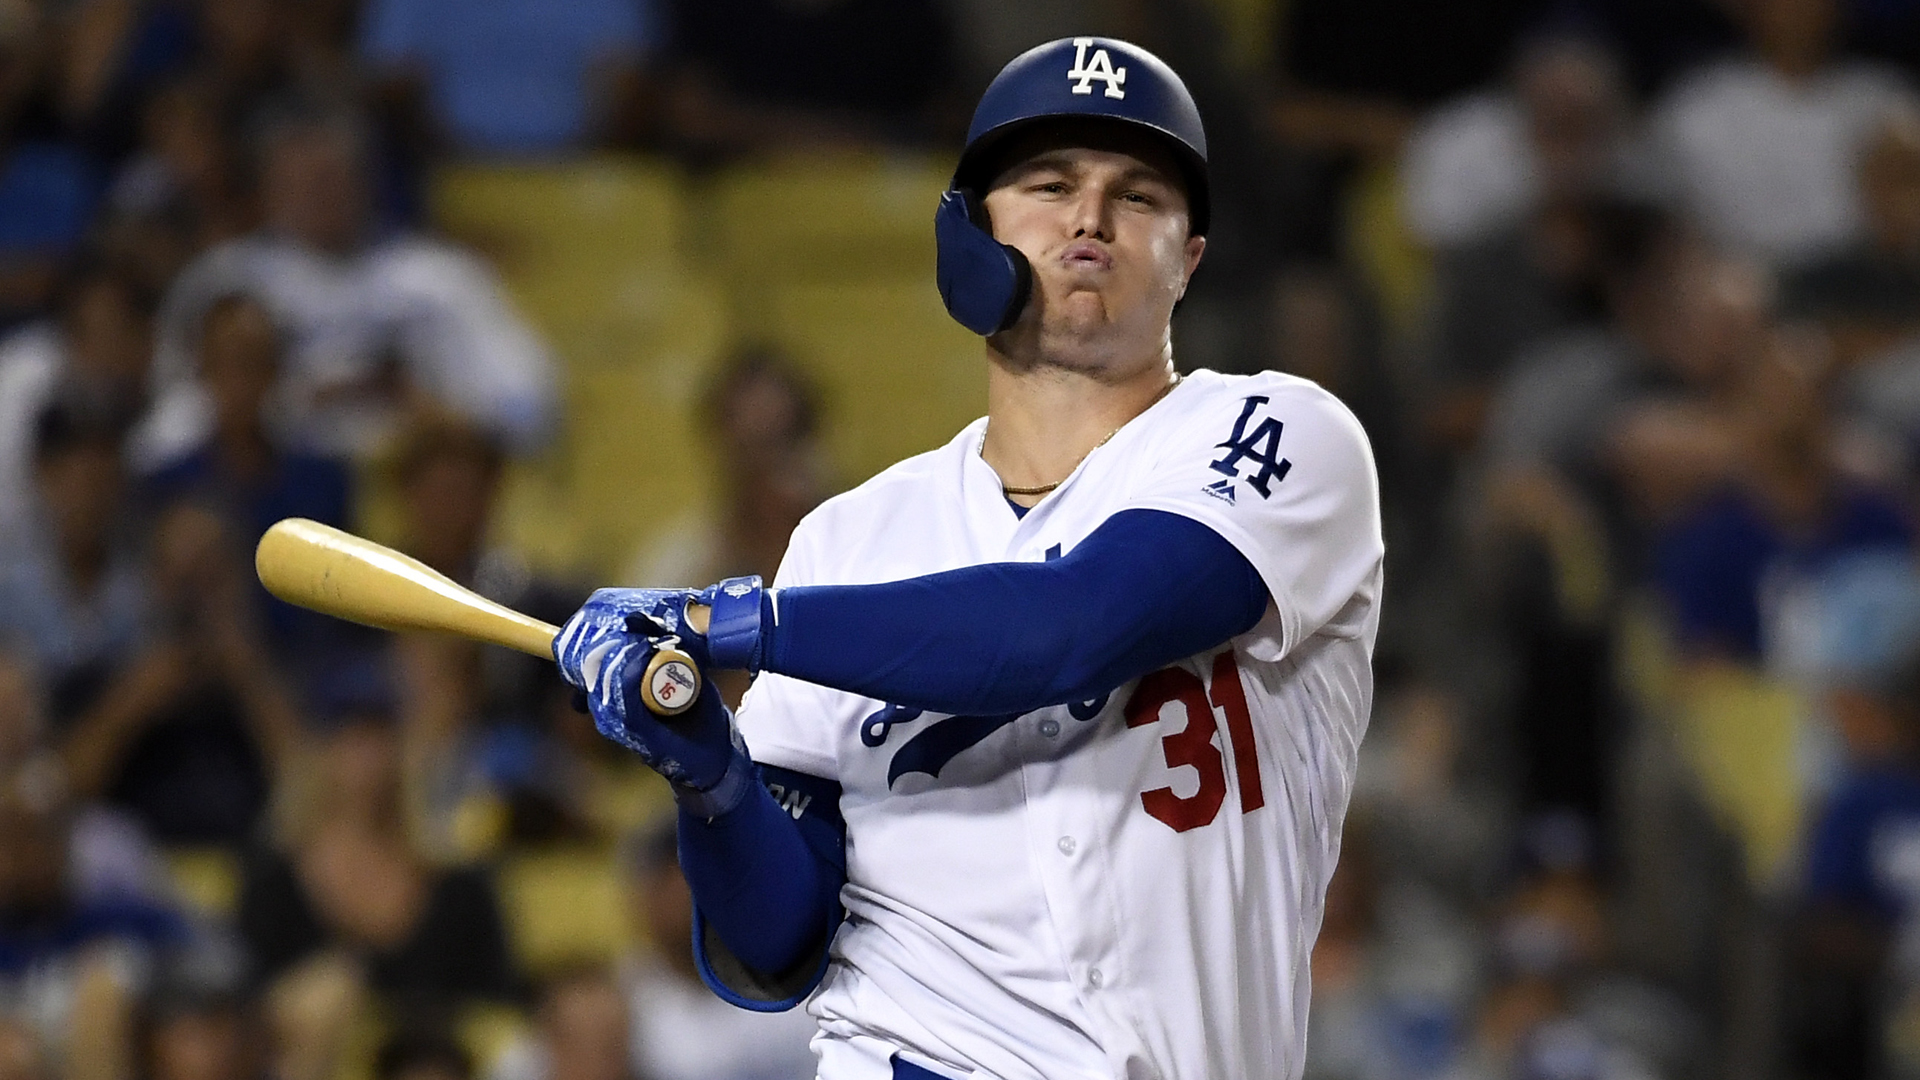 Joc Pederson of the Los Angeles Dodgers swings against Colorado Rockies during the sixth inning at Dodger Stadium on September 4, 2019 in Los Angeles. (Credit: Kevork Djansezian/Getty Images)